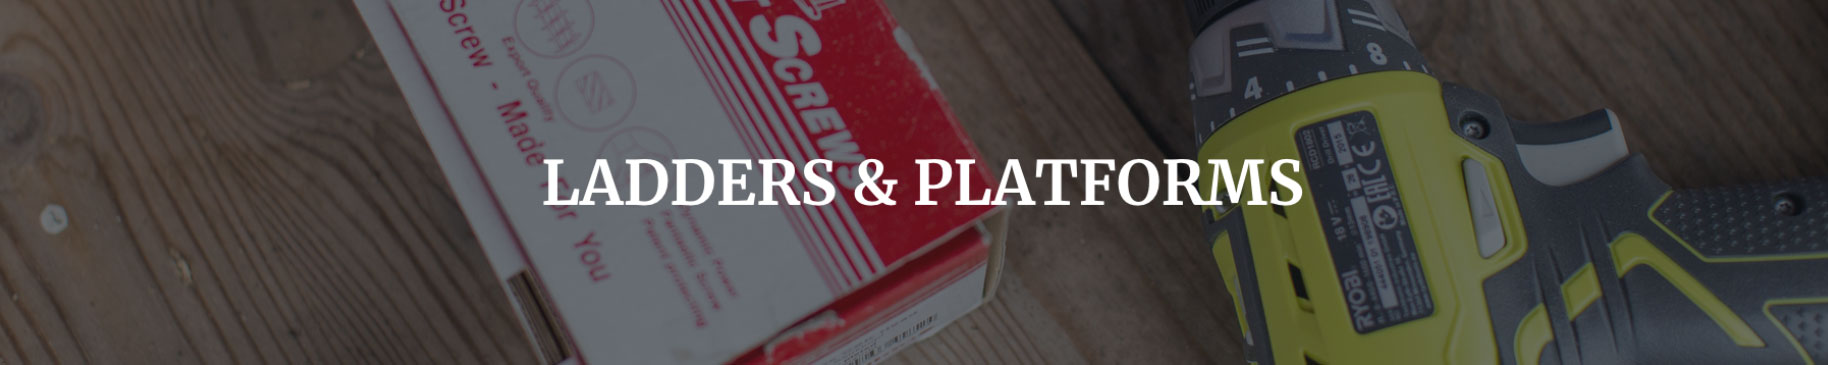 ladders and platforms vip industrial supplies perth